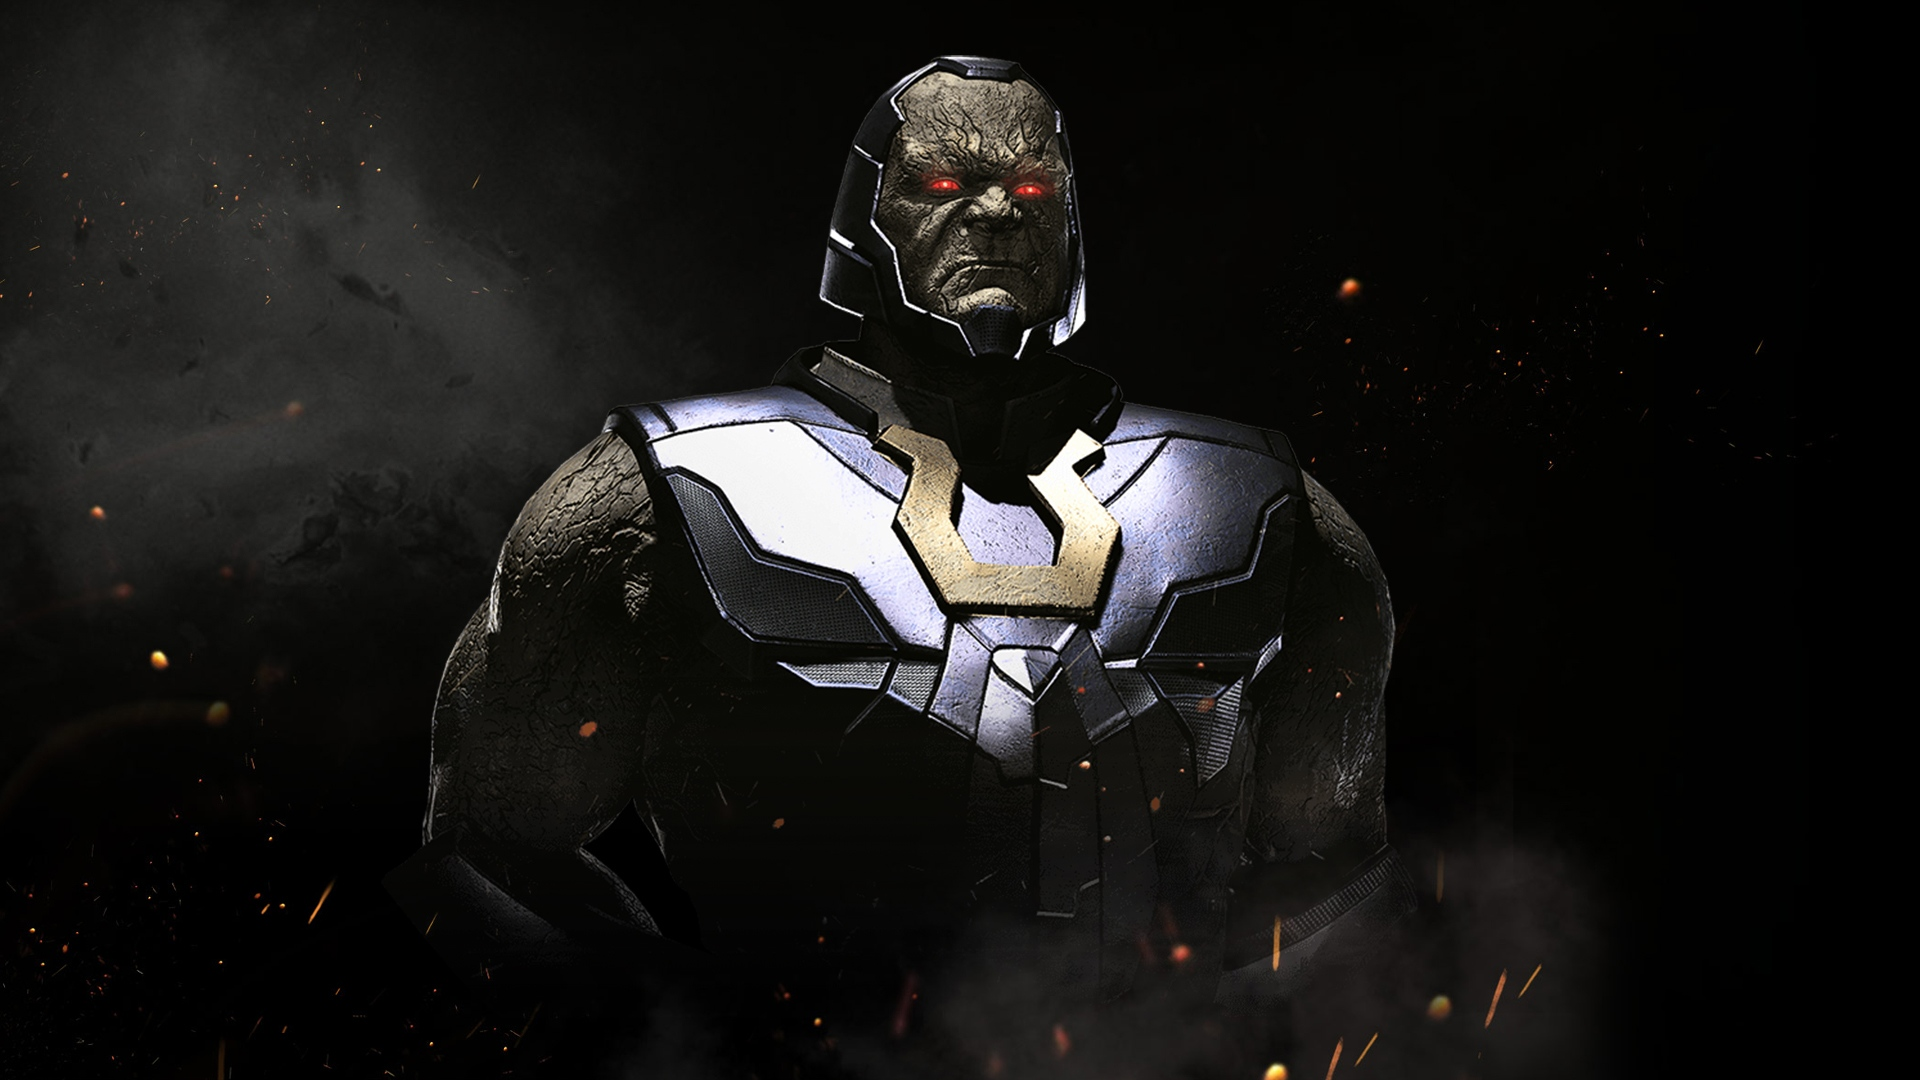 Darkseid HD Wallpaper Background Image 1920x1080 ID831199 1920x1080